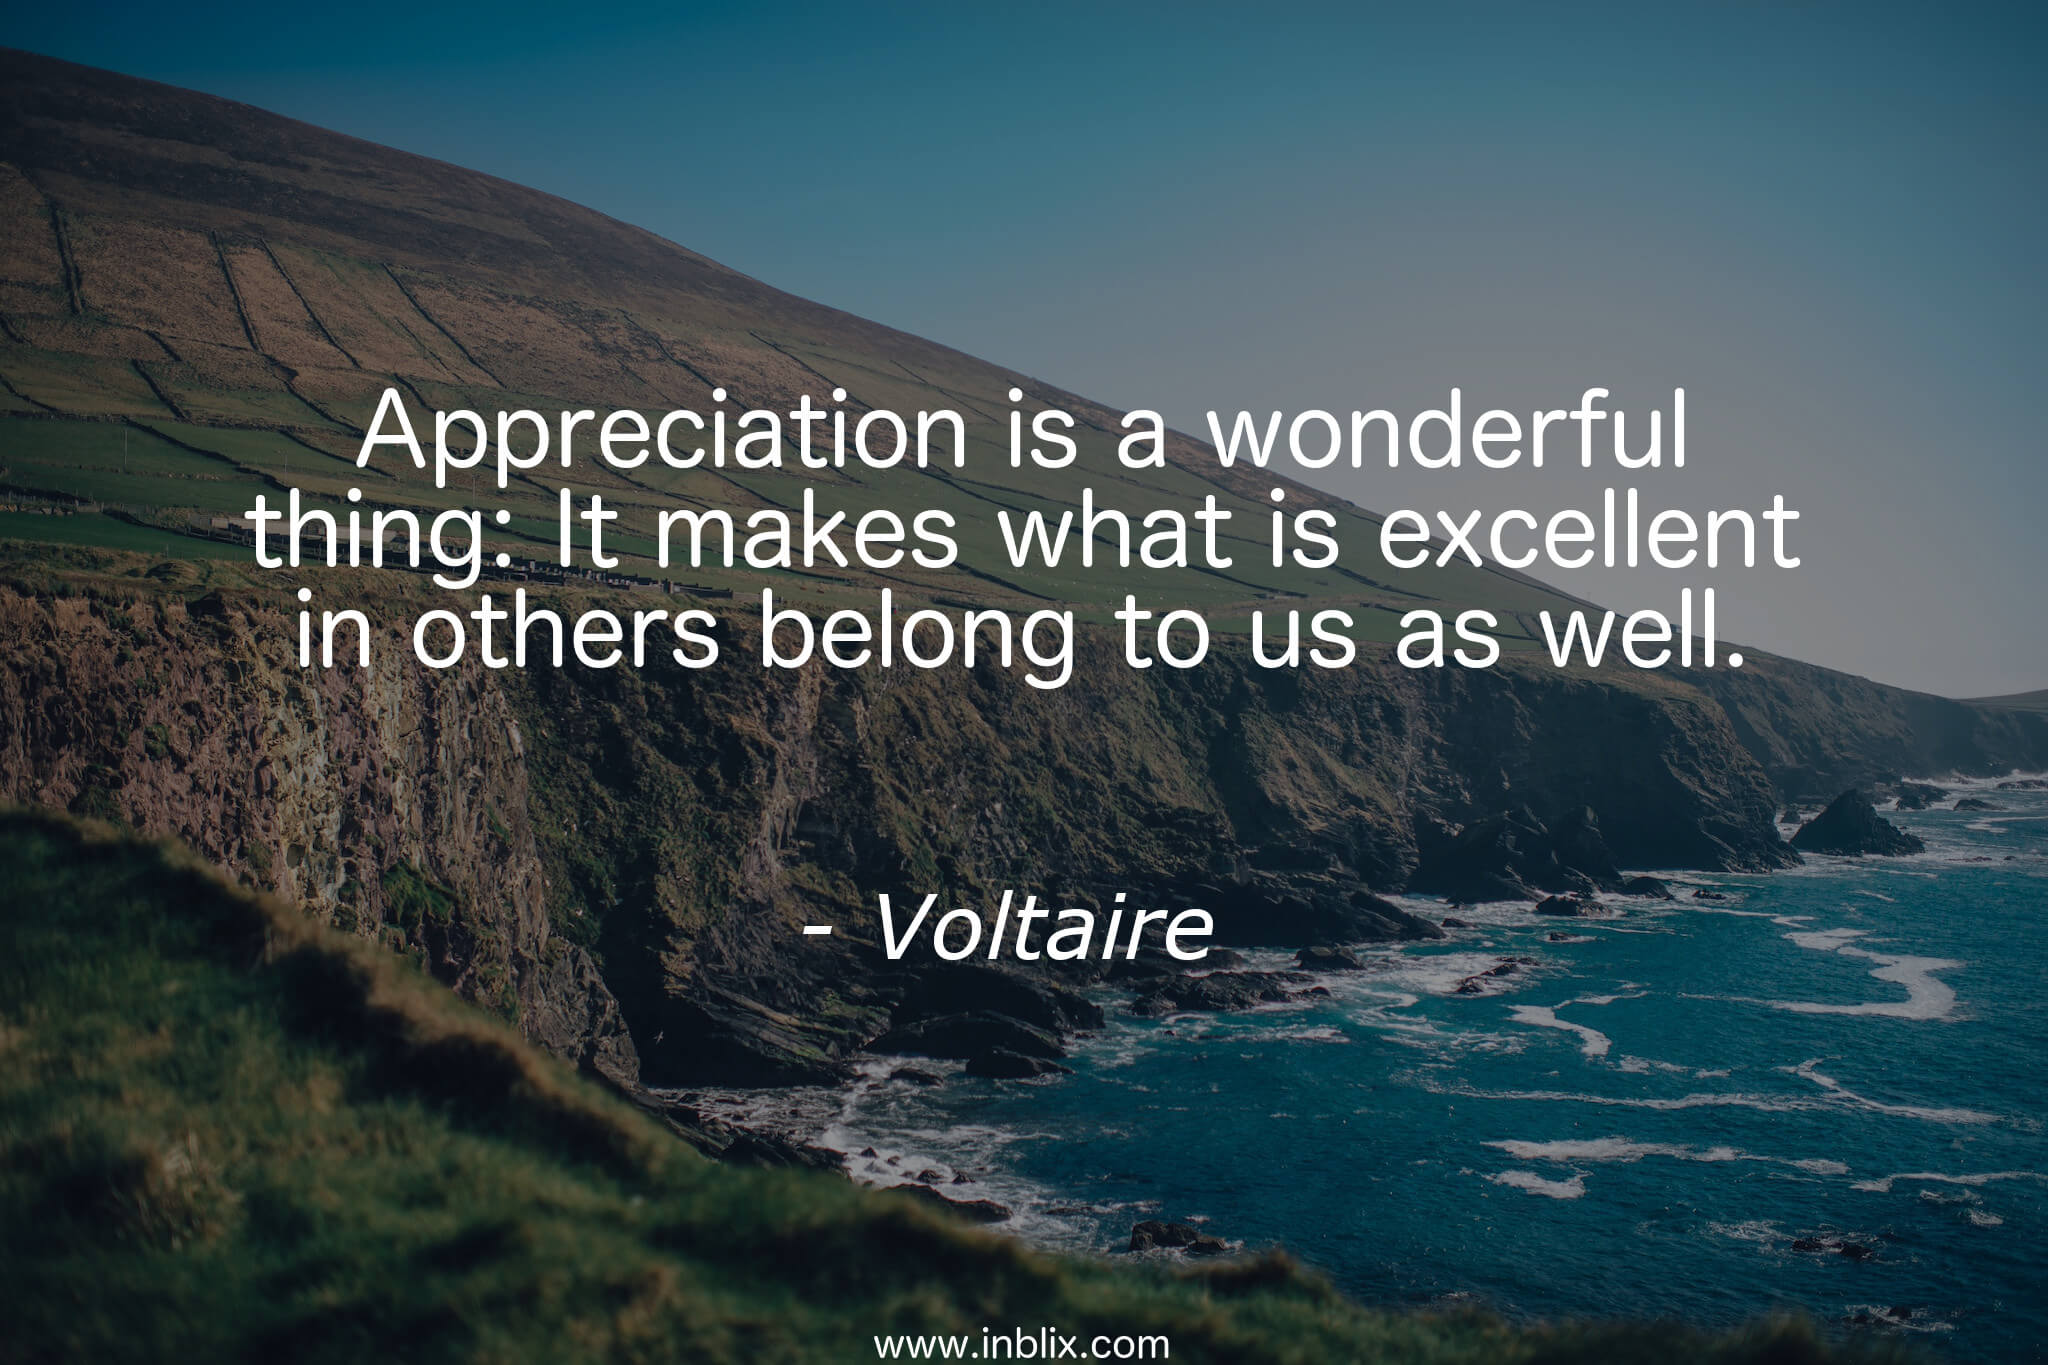 Appreciation is a wonderful thing; It makes what is excellent in others belong to us as well.